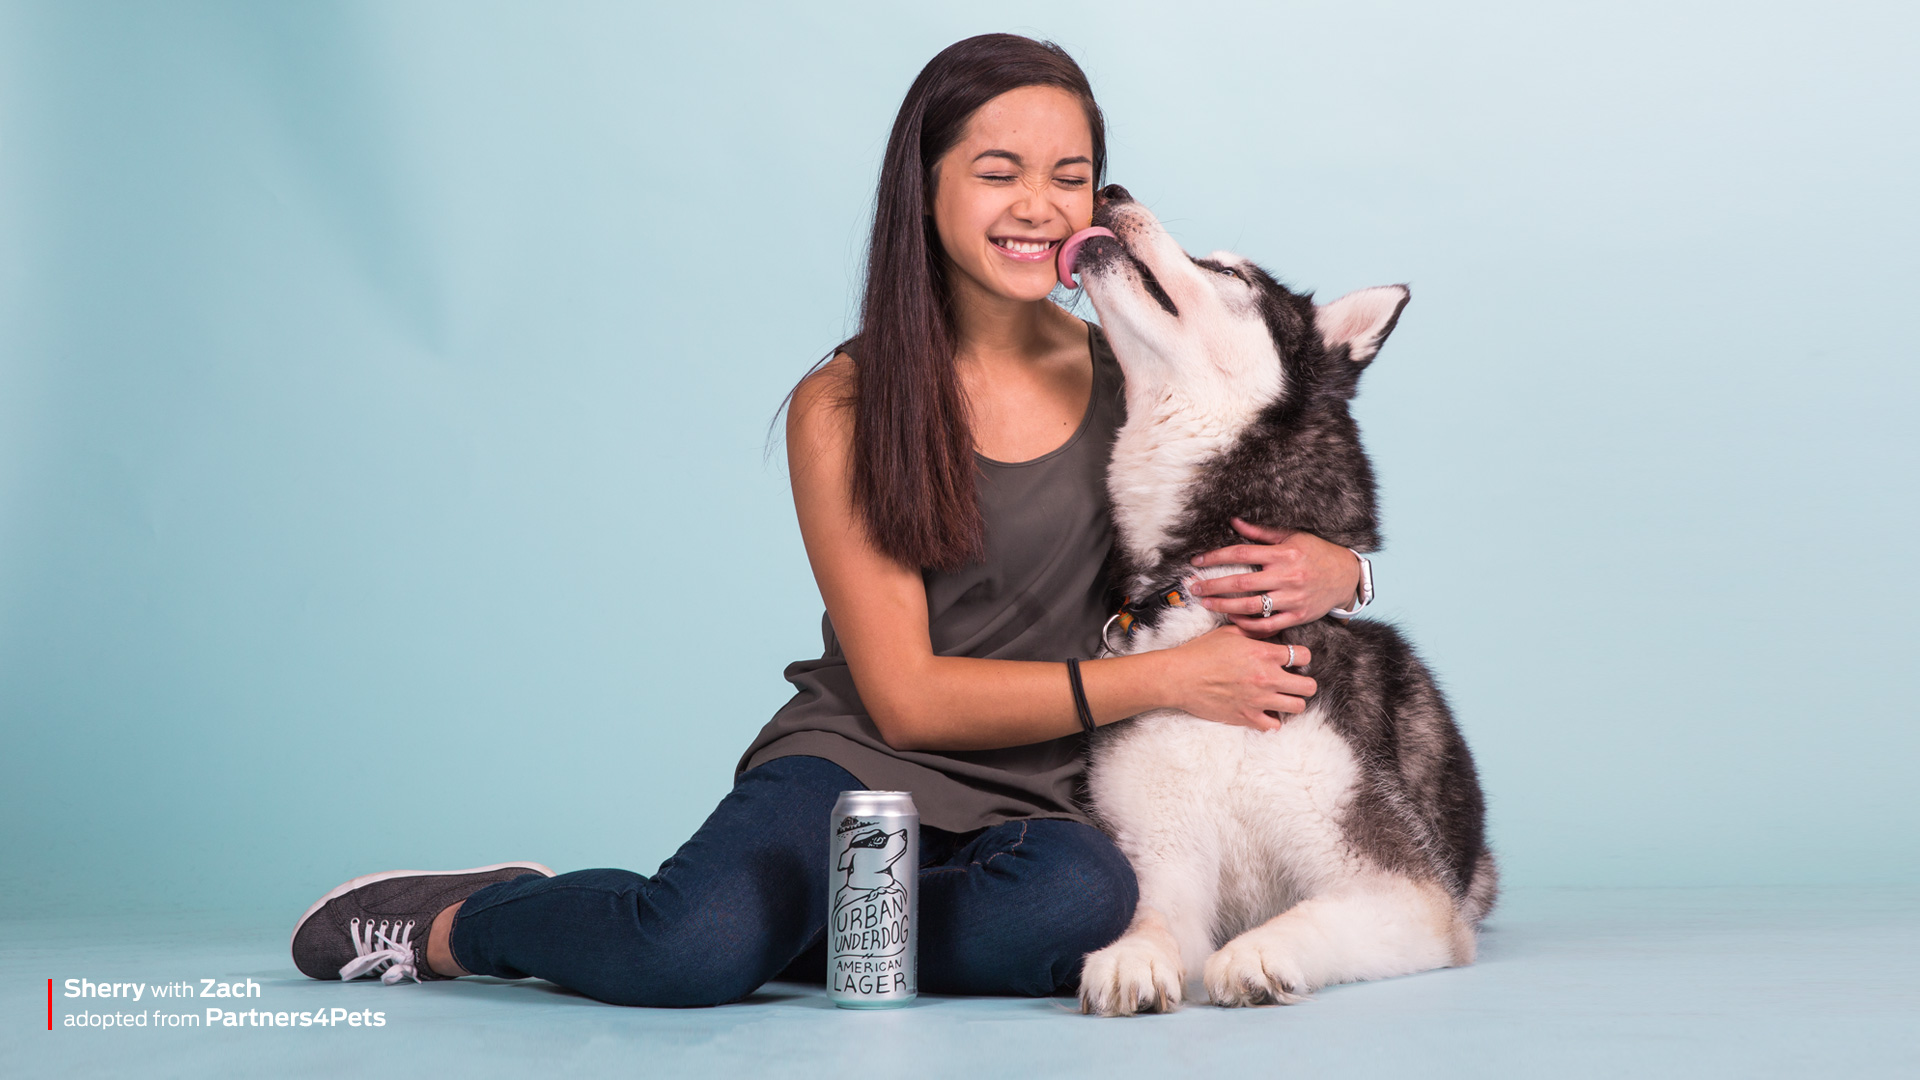 Photoshoot for Shelter Pet Event - Purina branding